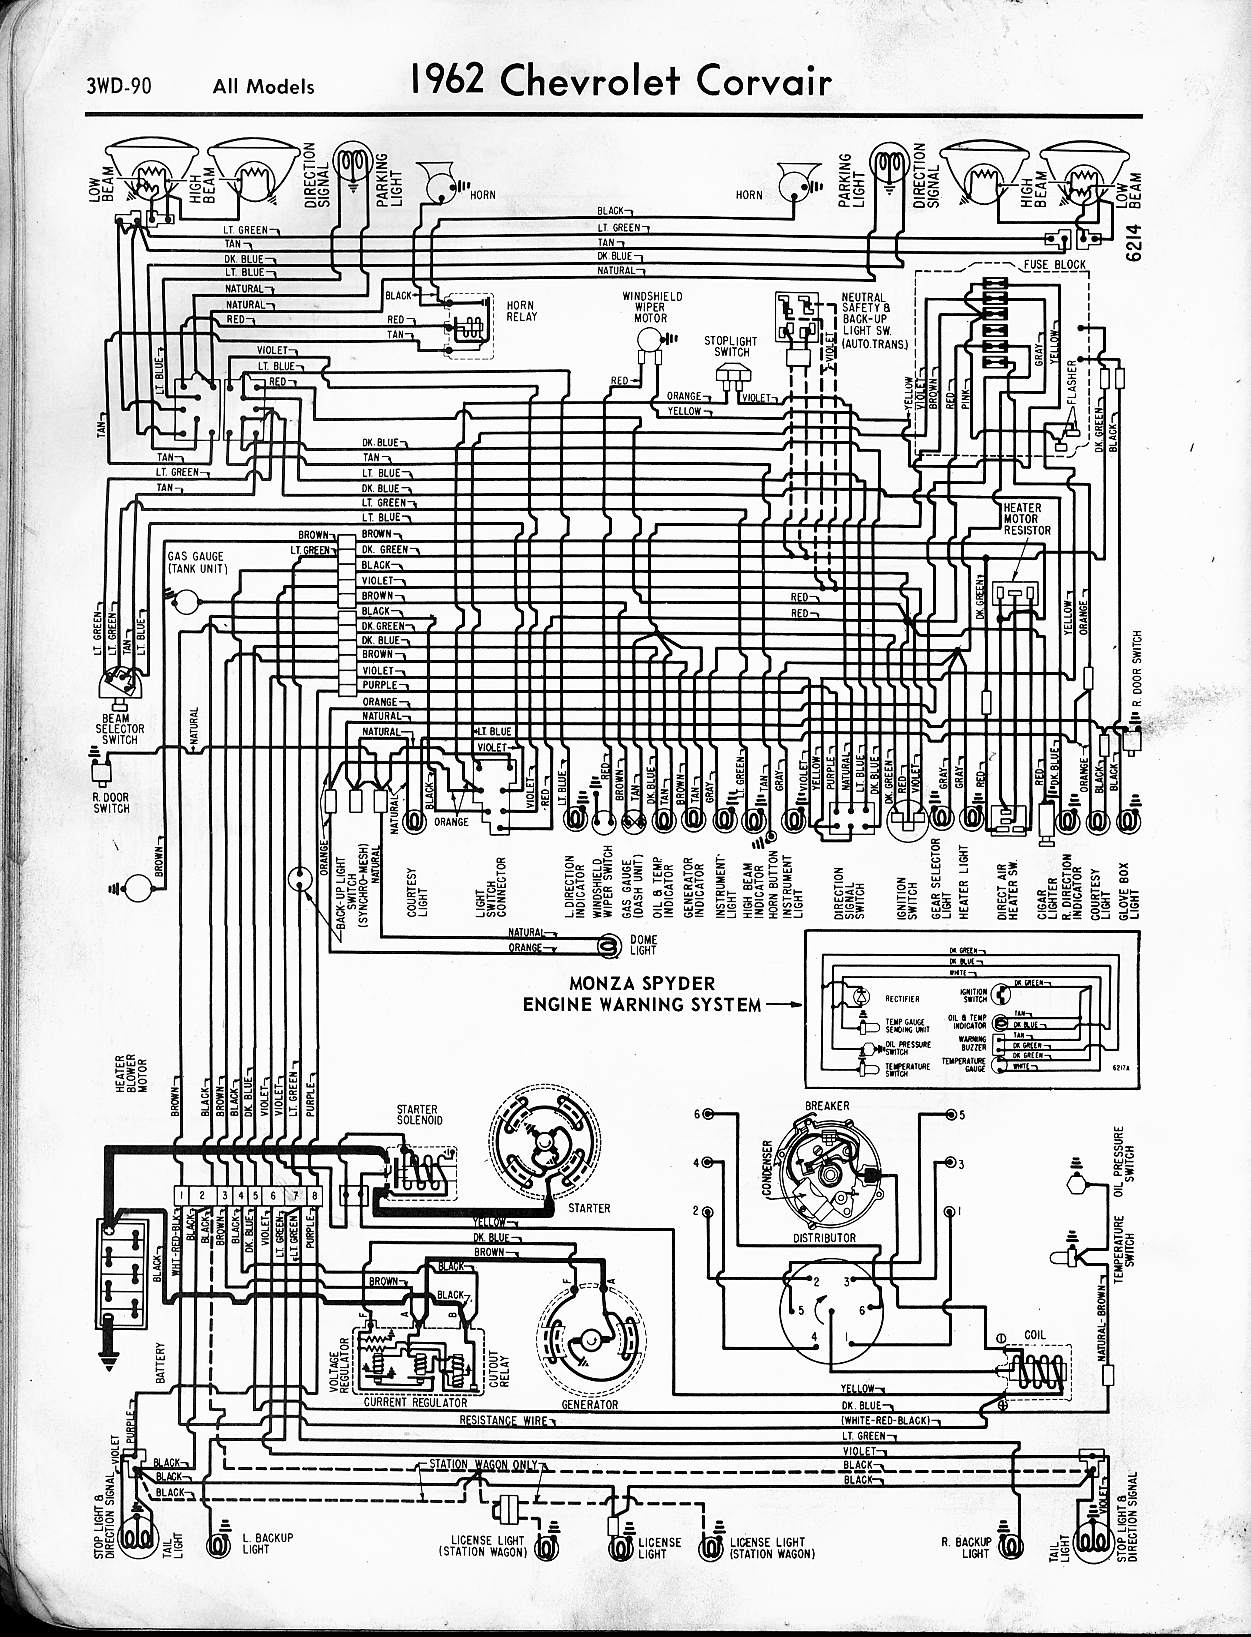 Corvair Wiring Diagram Chevy Motor Starter 1966 Engine Blog1966 Blog Sea Breeze Motorhome